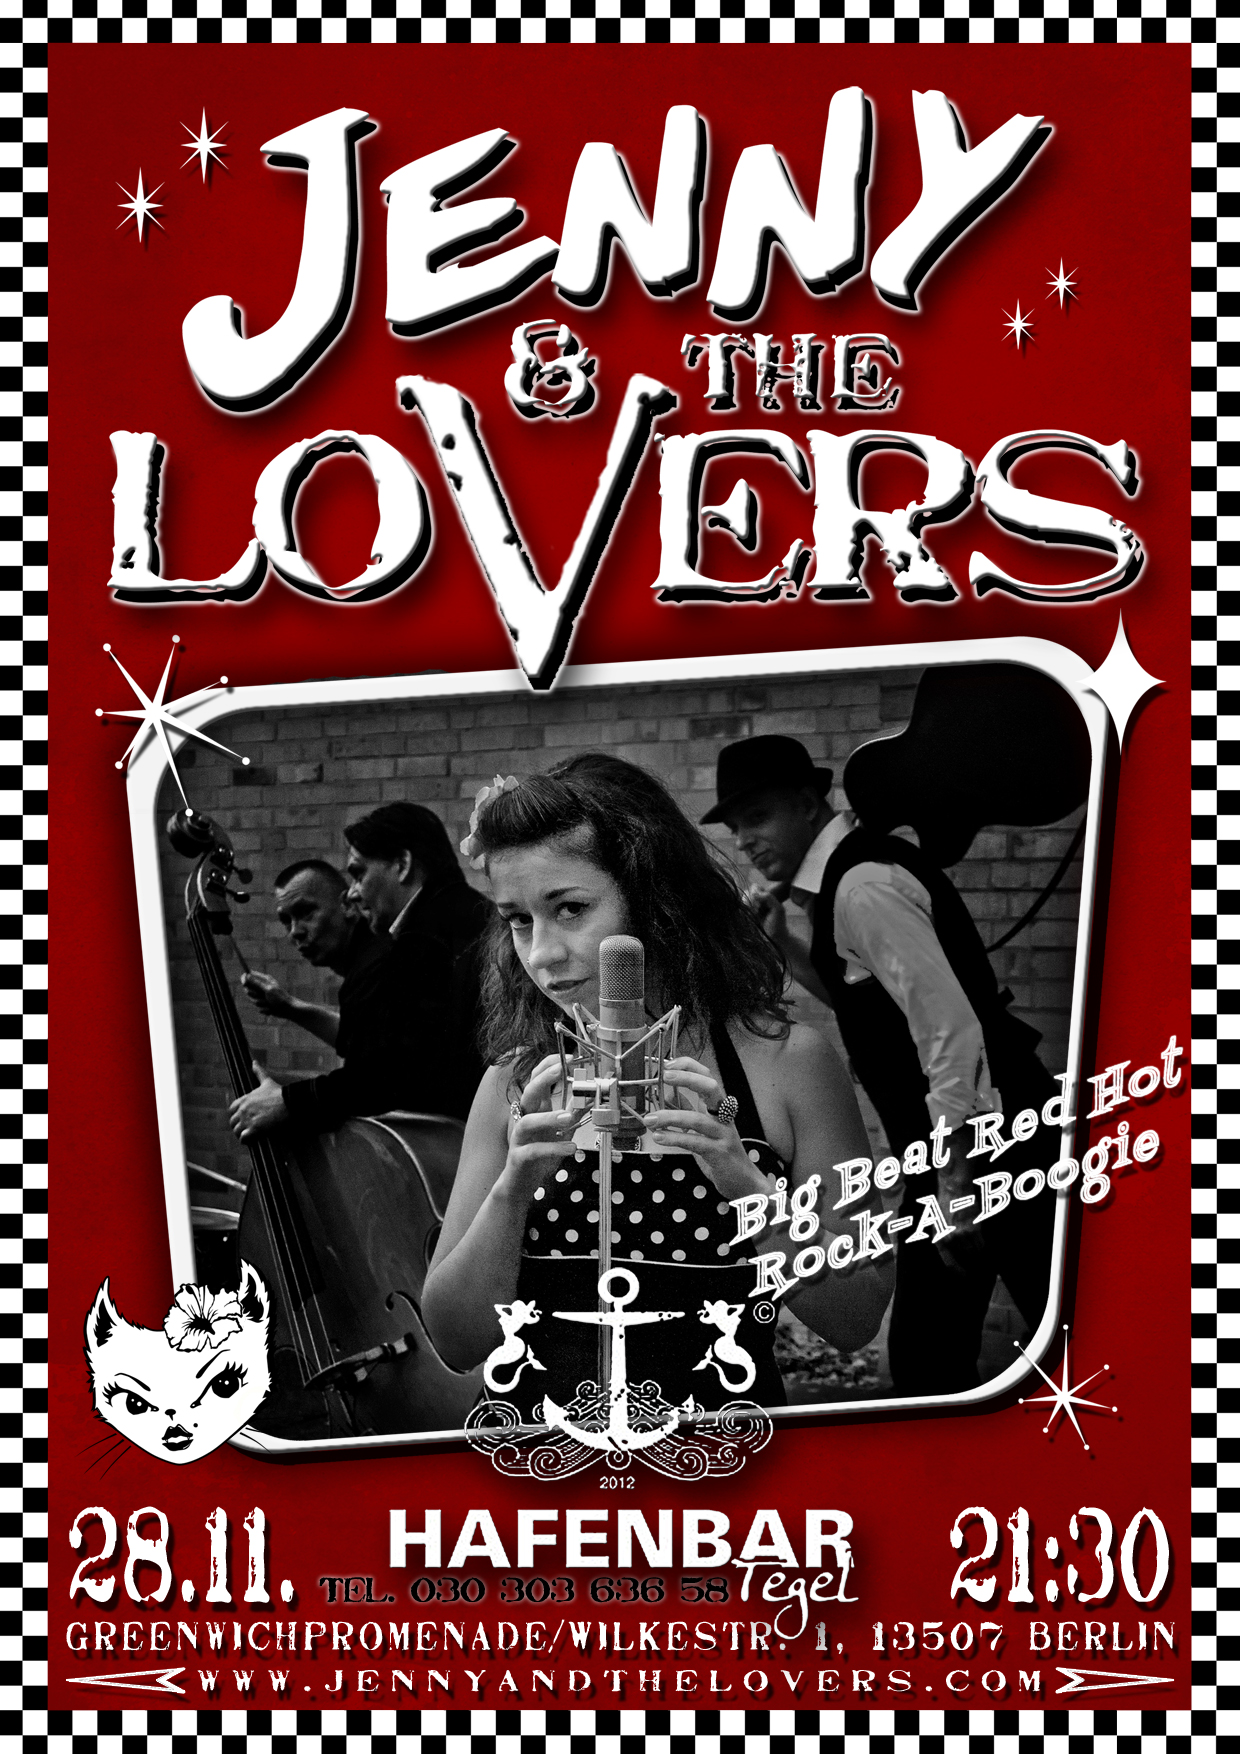 jenny and the lovers